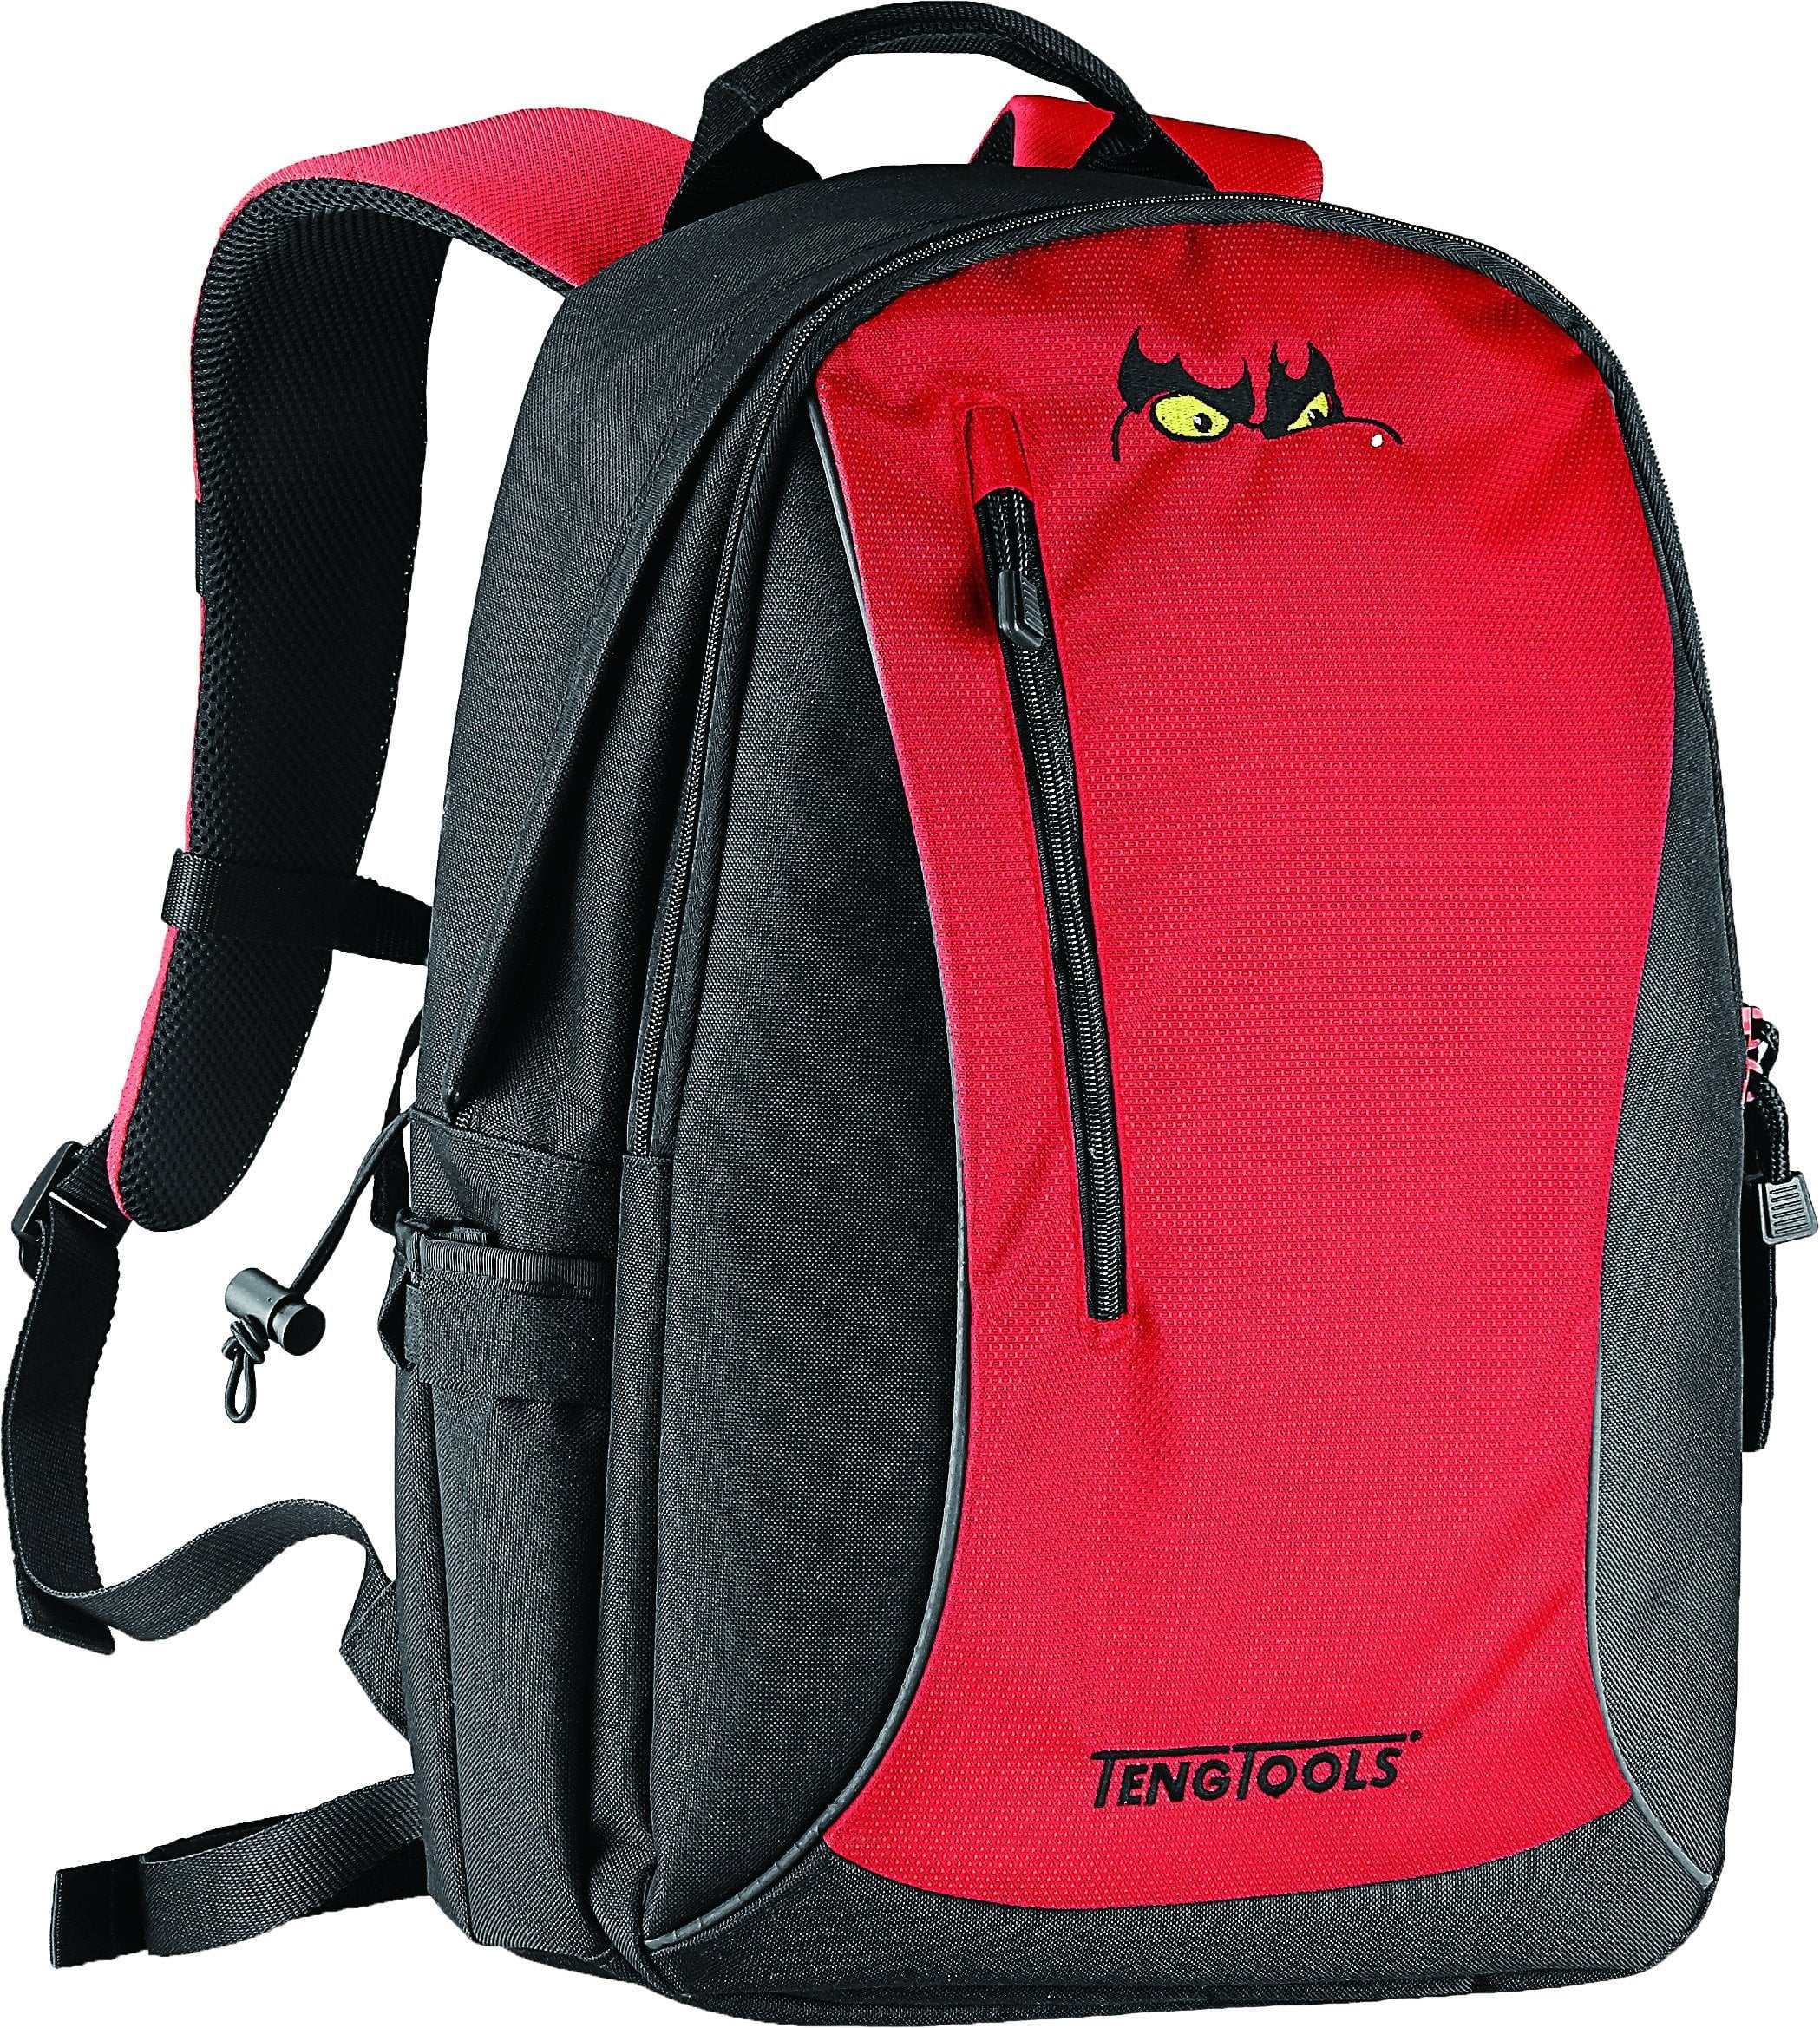 Teng Tools Lightweight Small Packable Travel Outdoor Back Pack Daypack Bag with Straps - P-BP2